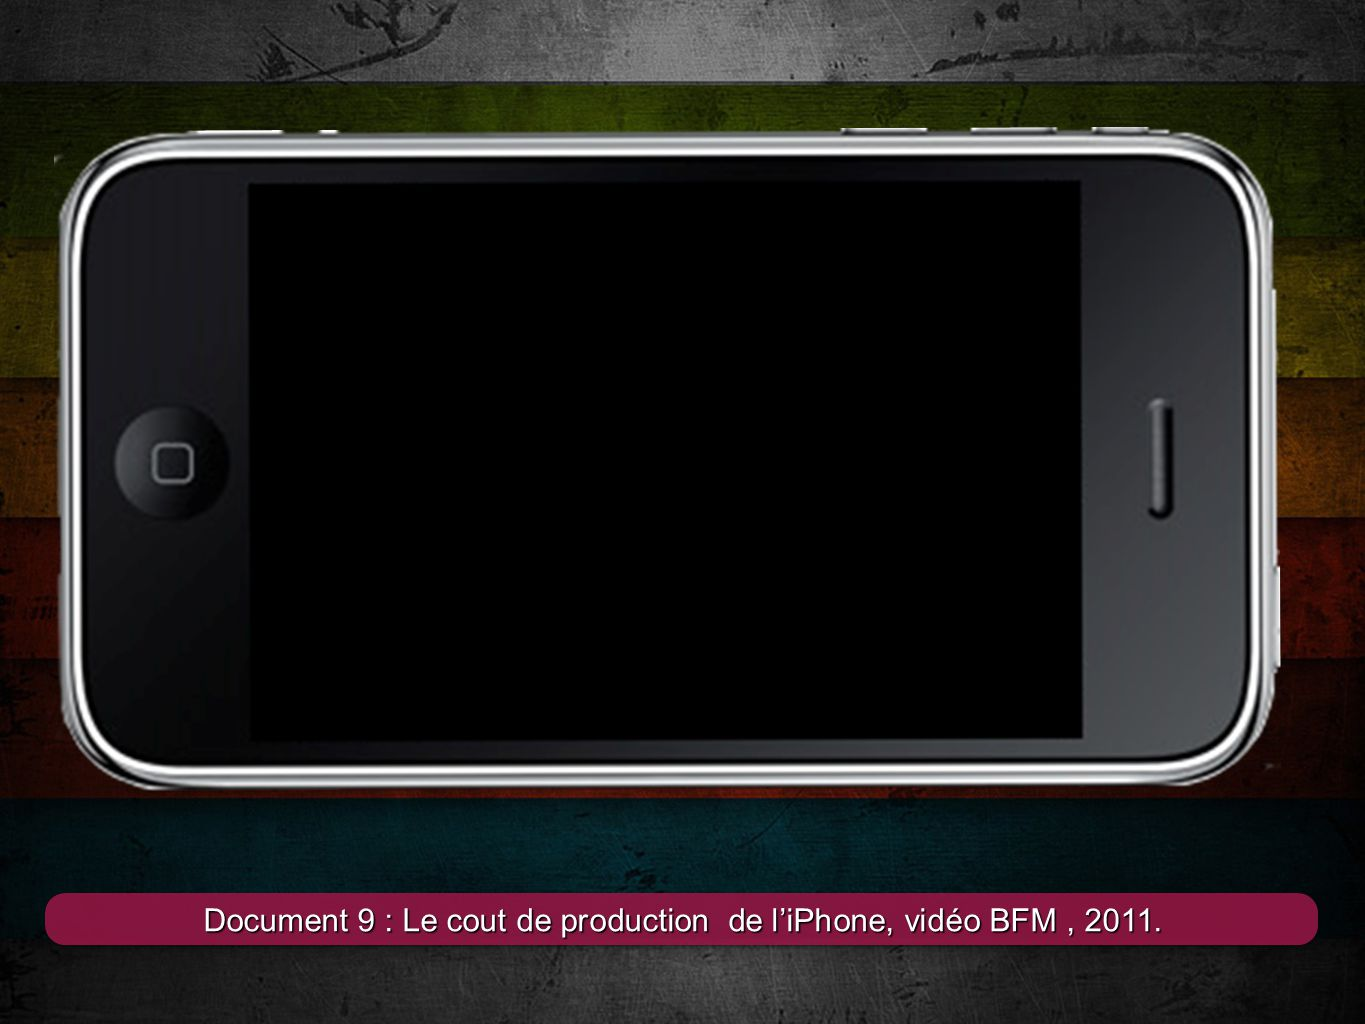 Document 9 : Le cout de production de l'iPhone, vidéo BFM , 2011.